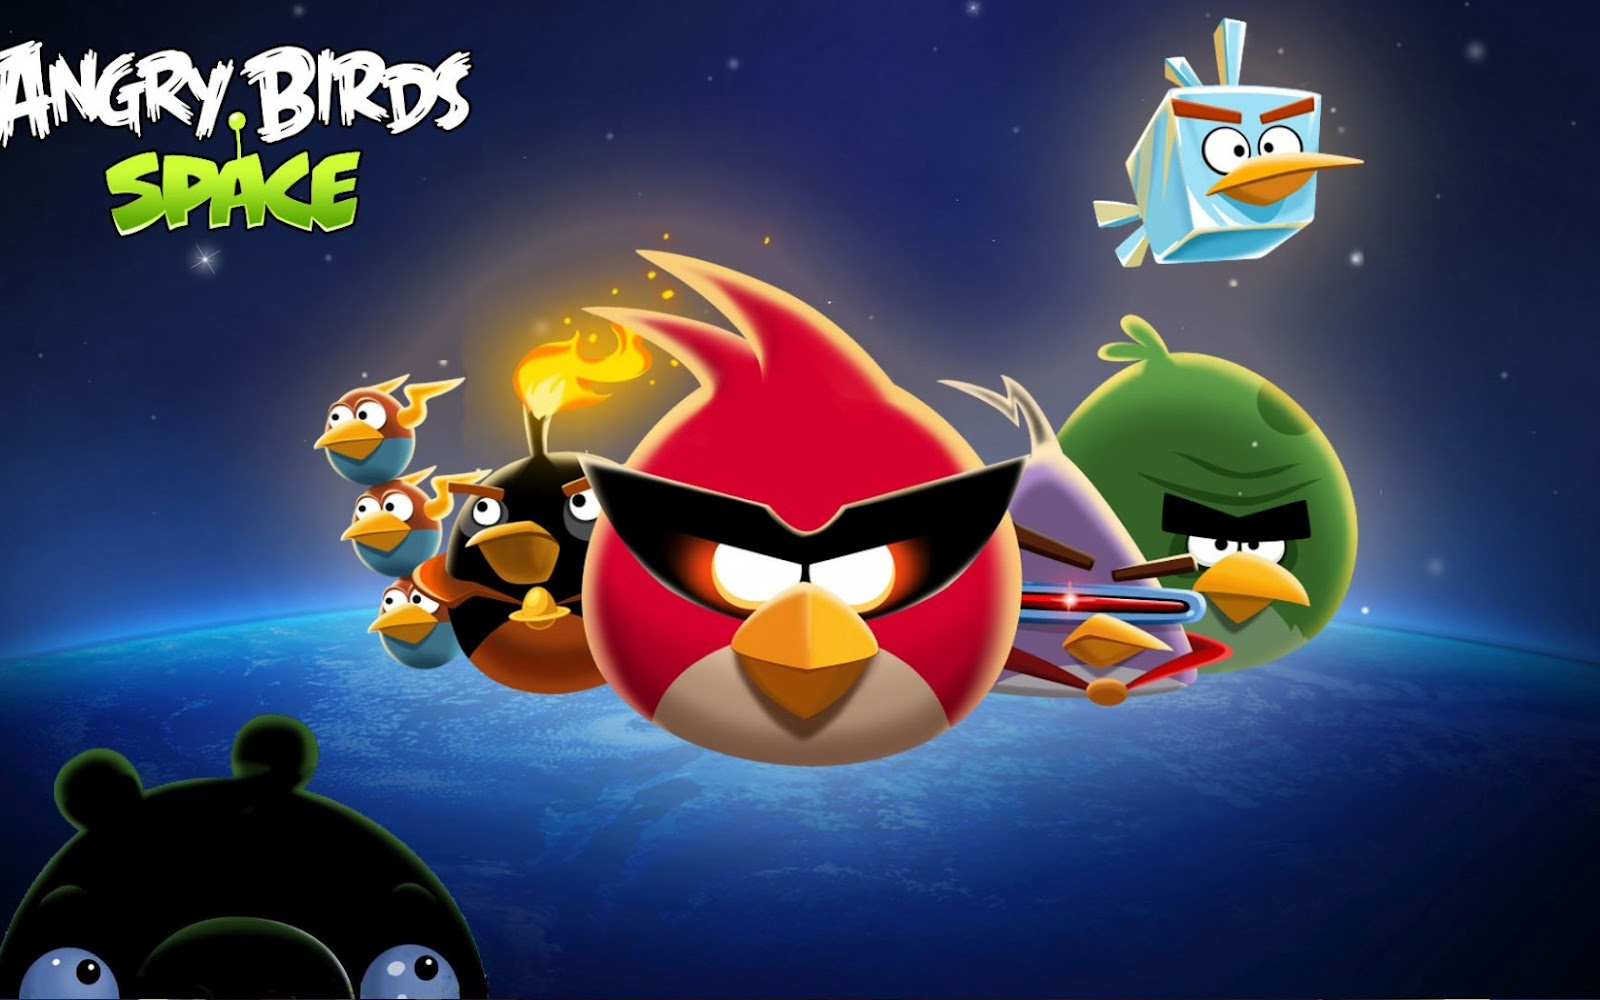 angry birds | hd wallpapers (high definition) | free background